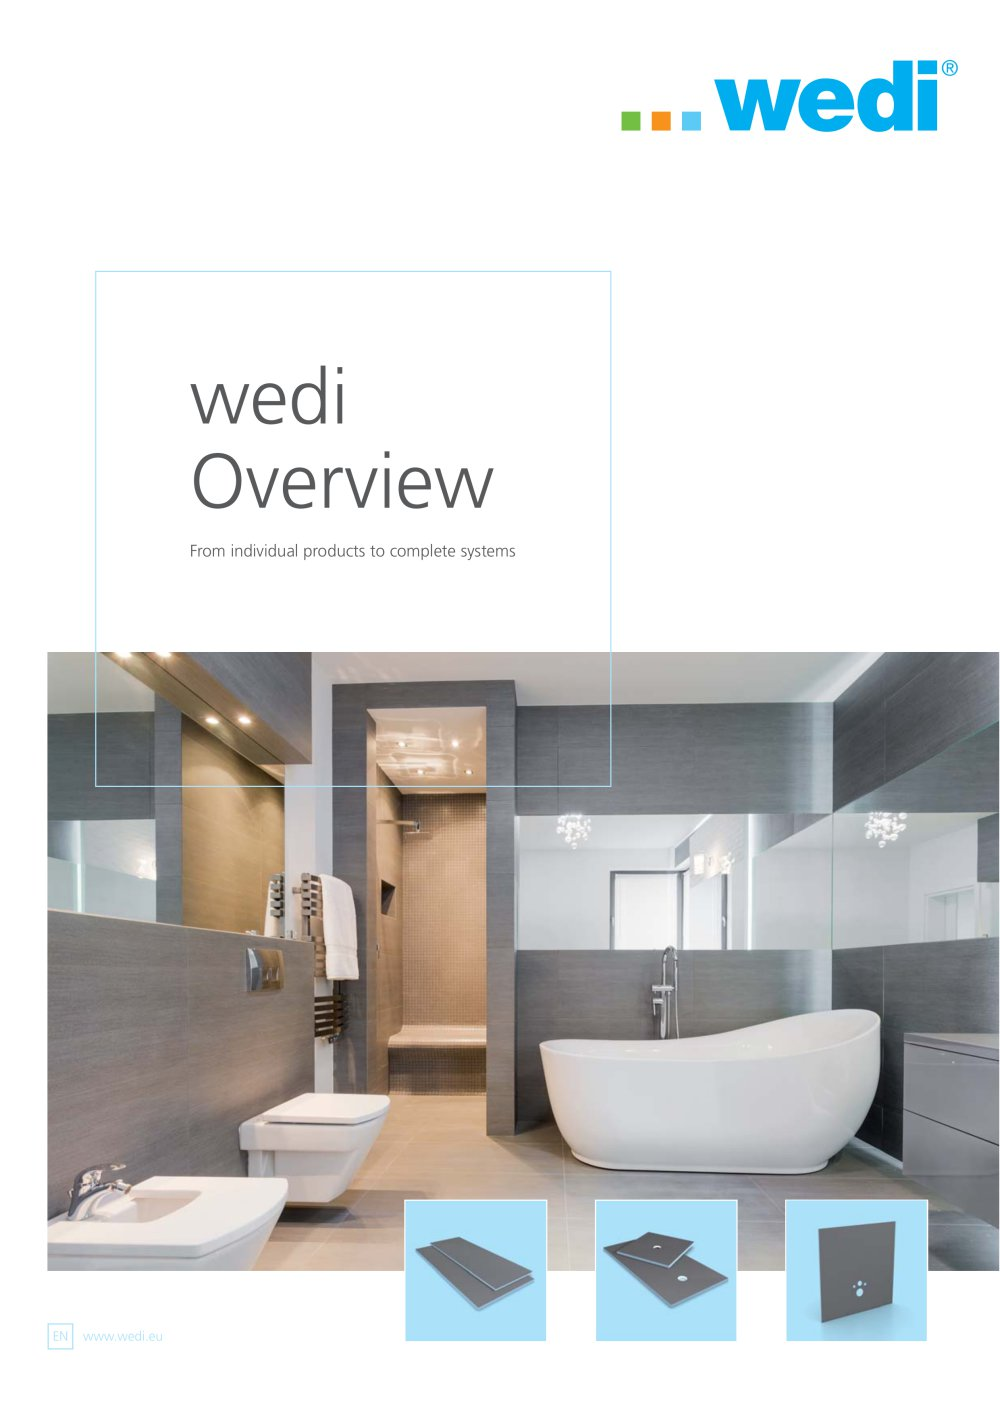 Wedi Emsdetten overview wedi gmbh pdf catalogues documentation brochures